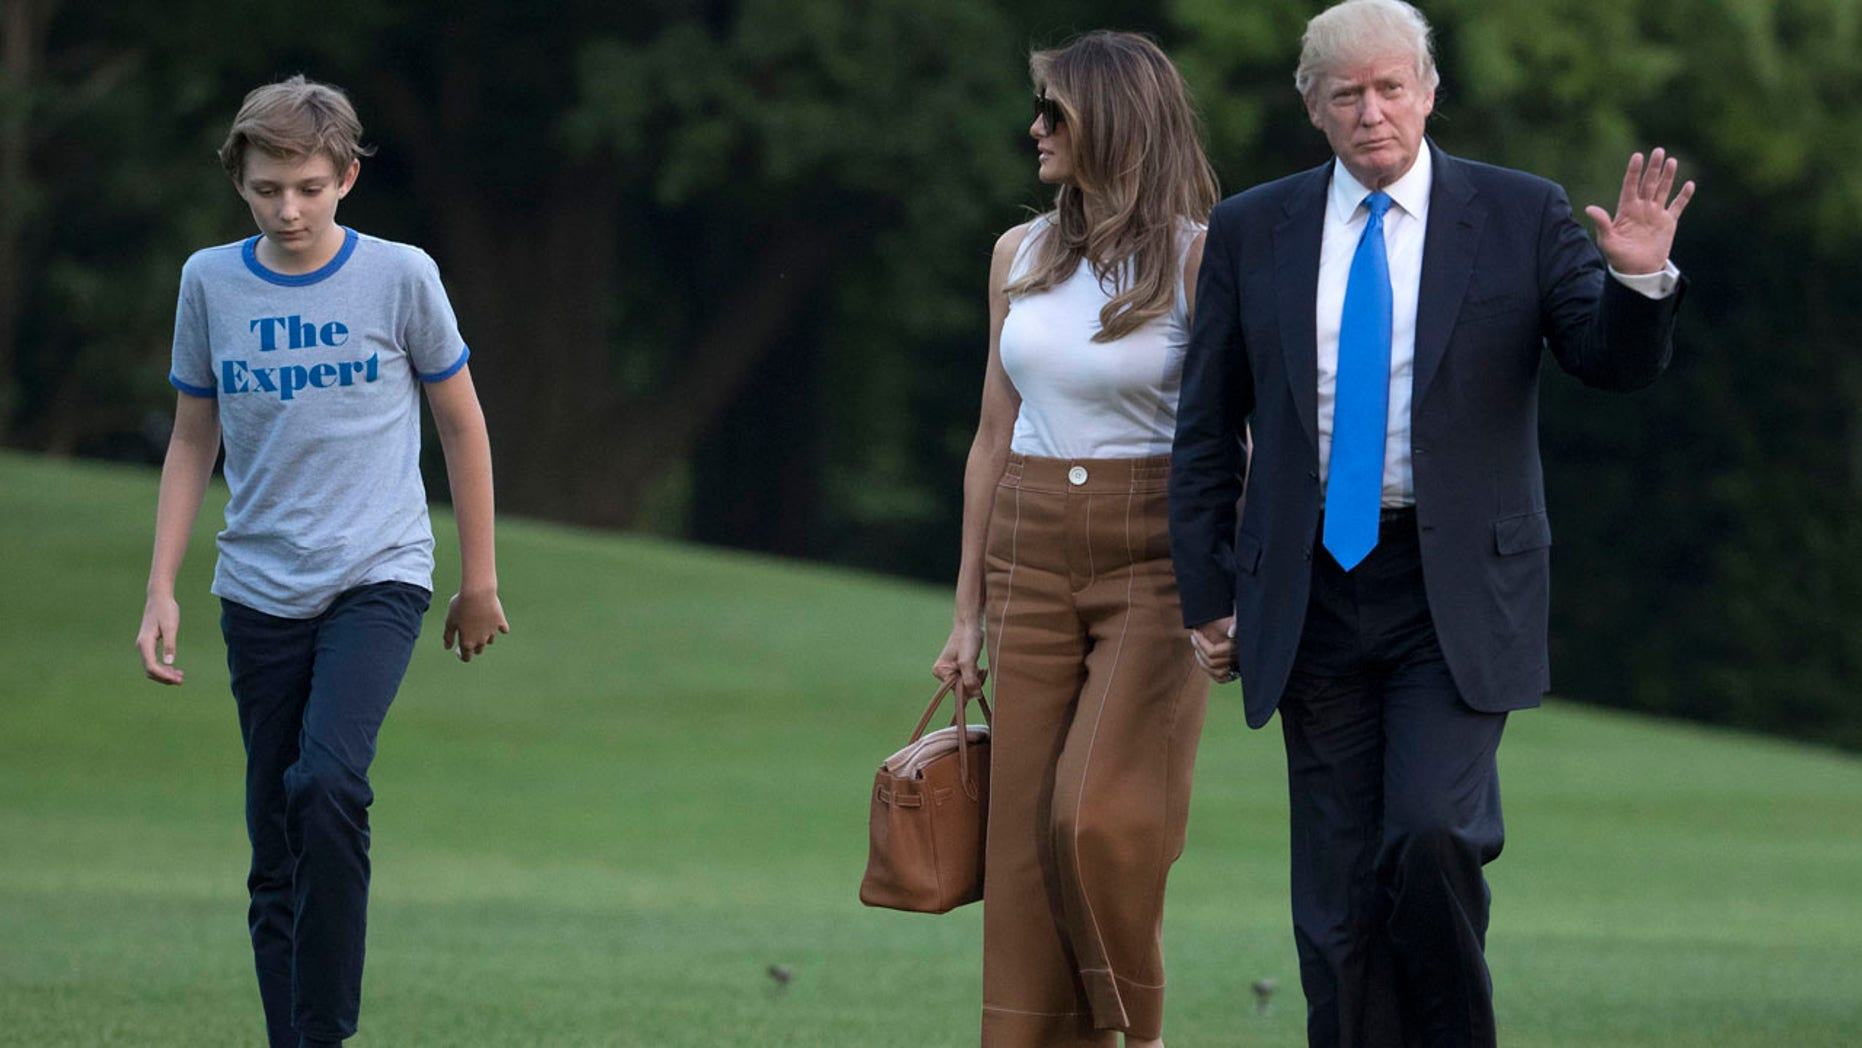 President Donald Trump waves as he walks with first lady Melania Trump and their son, Barron Trump, from Marine One across the South Lawn to the White House in Washington, Sunday, June 11, 2017, as they returned from Bedminster, N.J. (AP Photo/Carolyn Kaster)